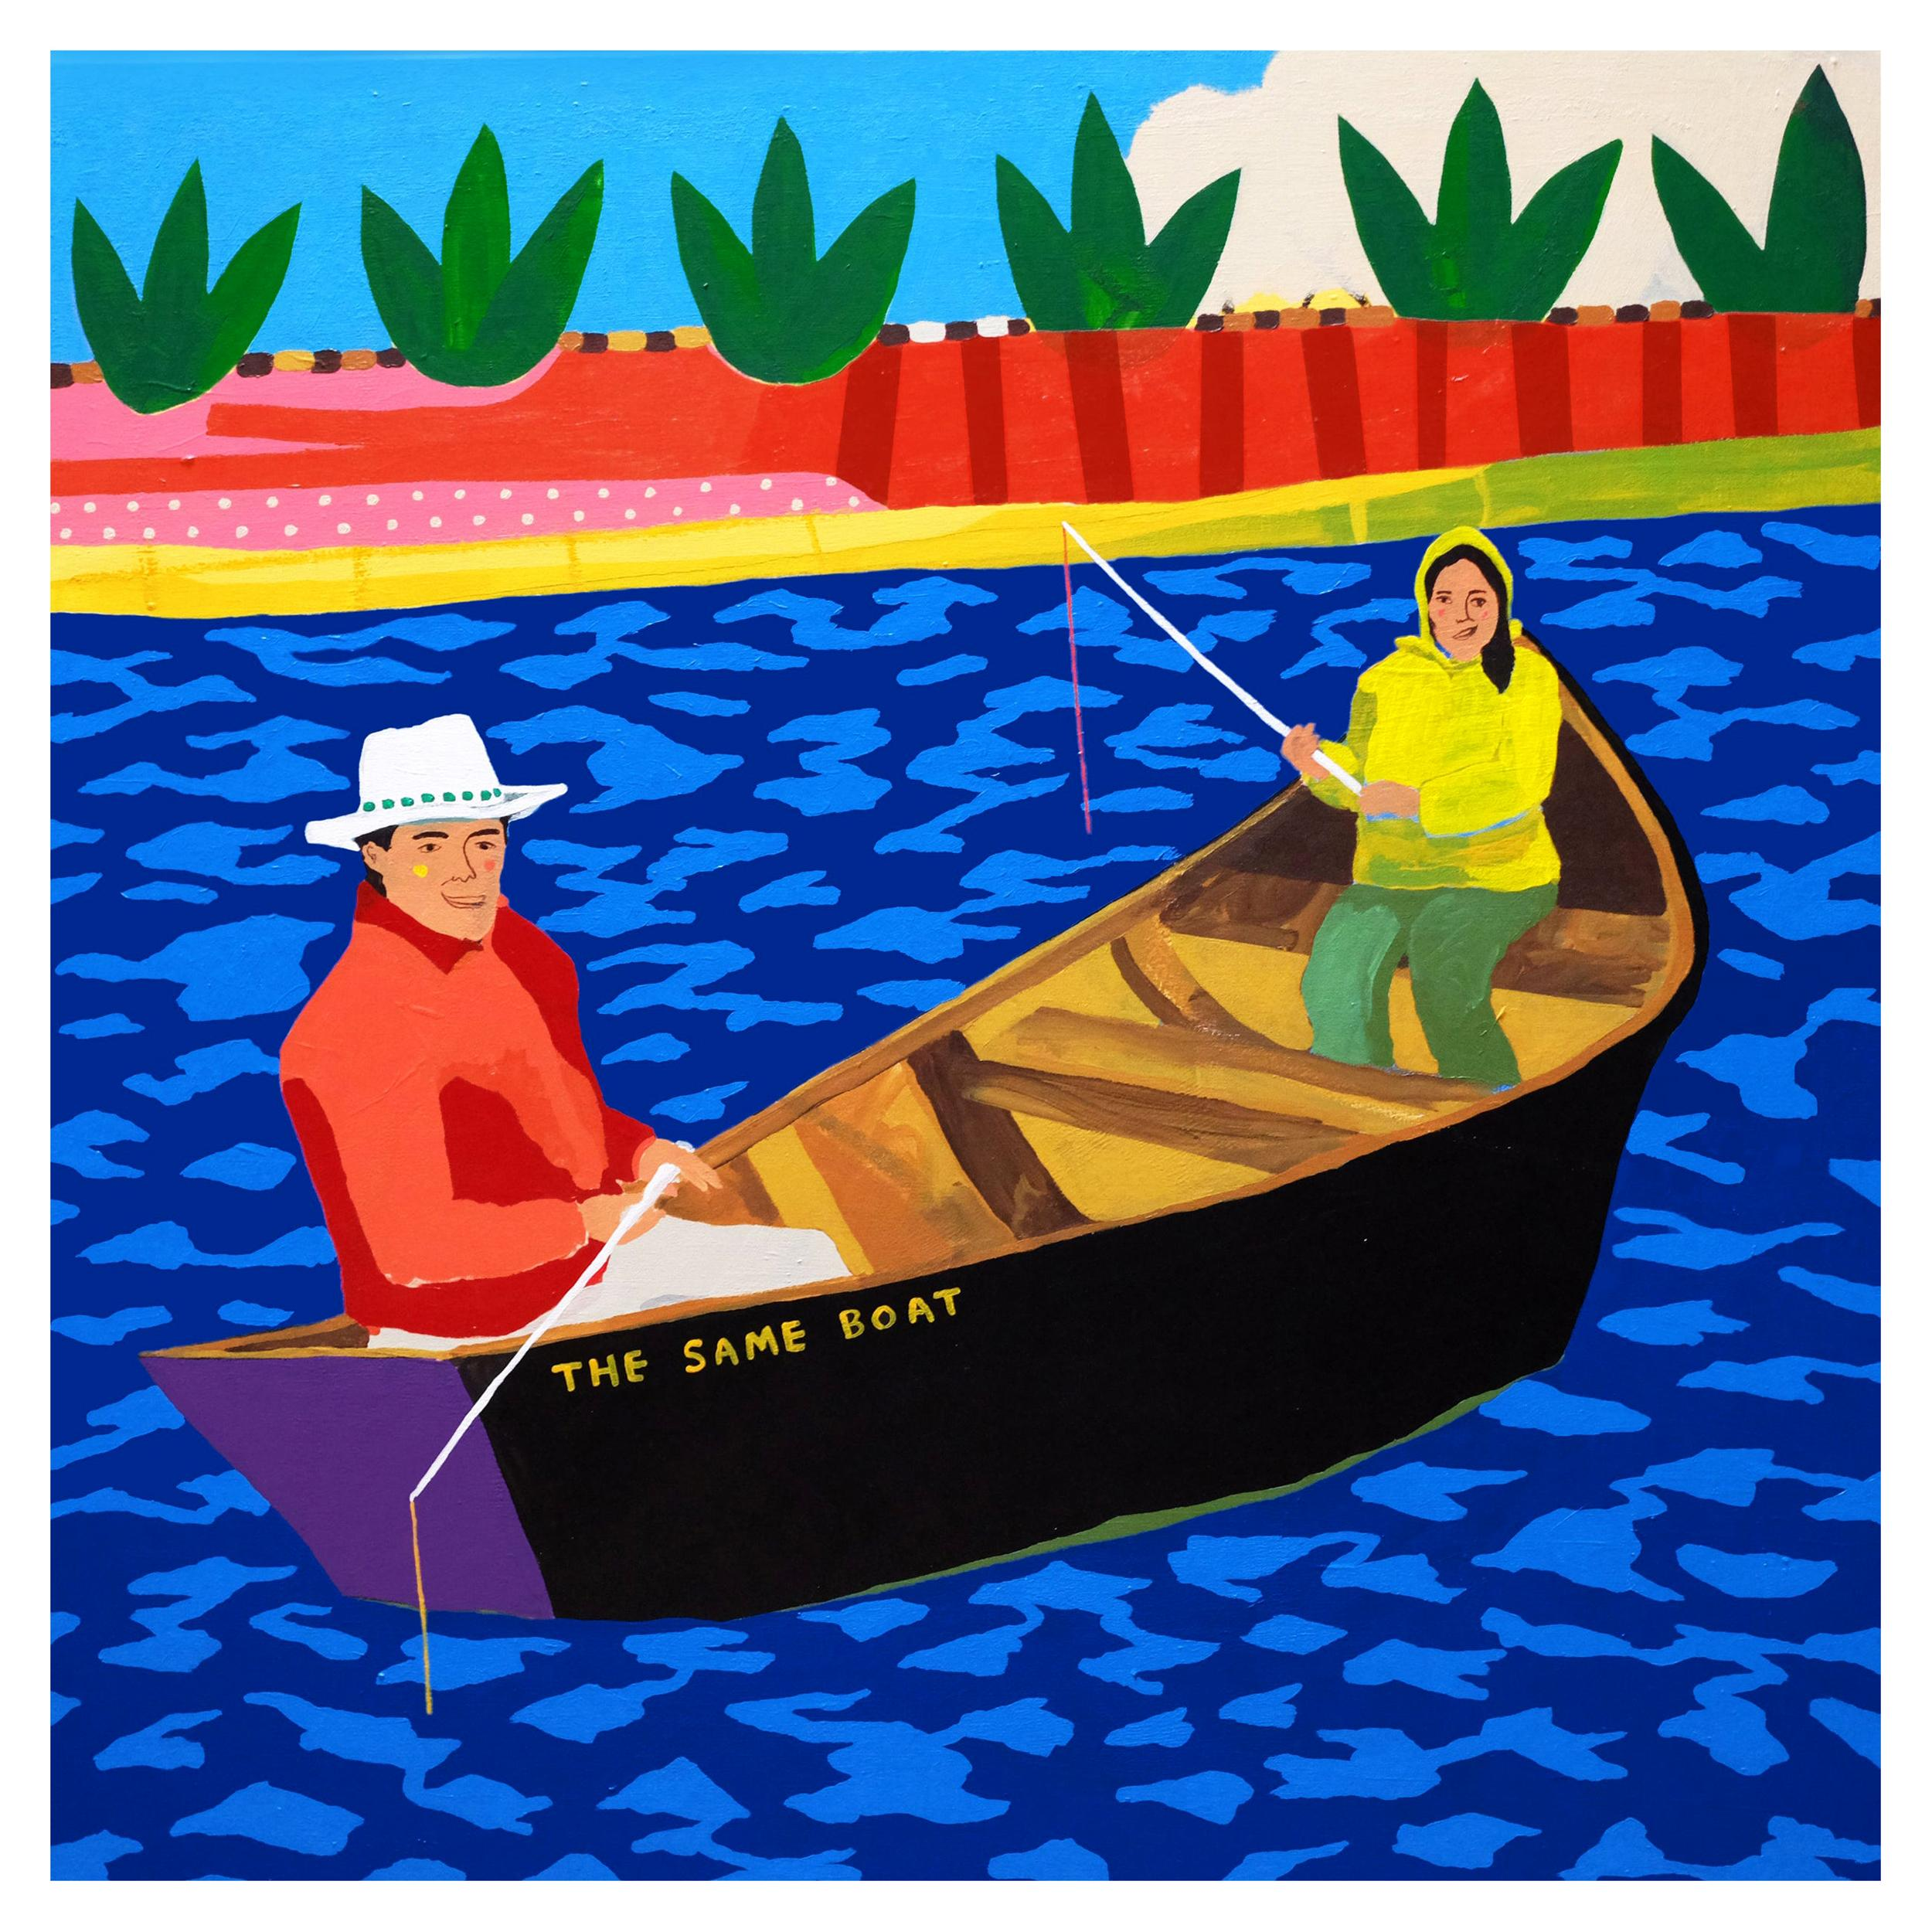 'They Were In the Same Boat' Portrait Painting by Alan Fears Pop Art